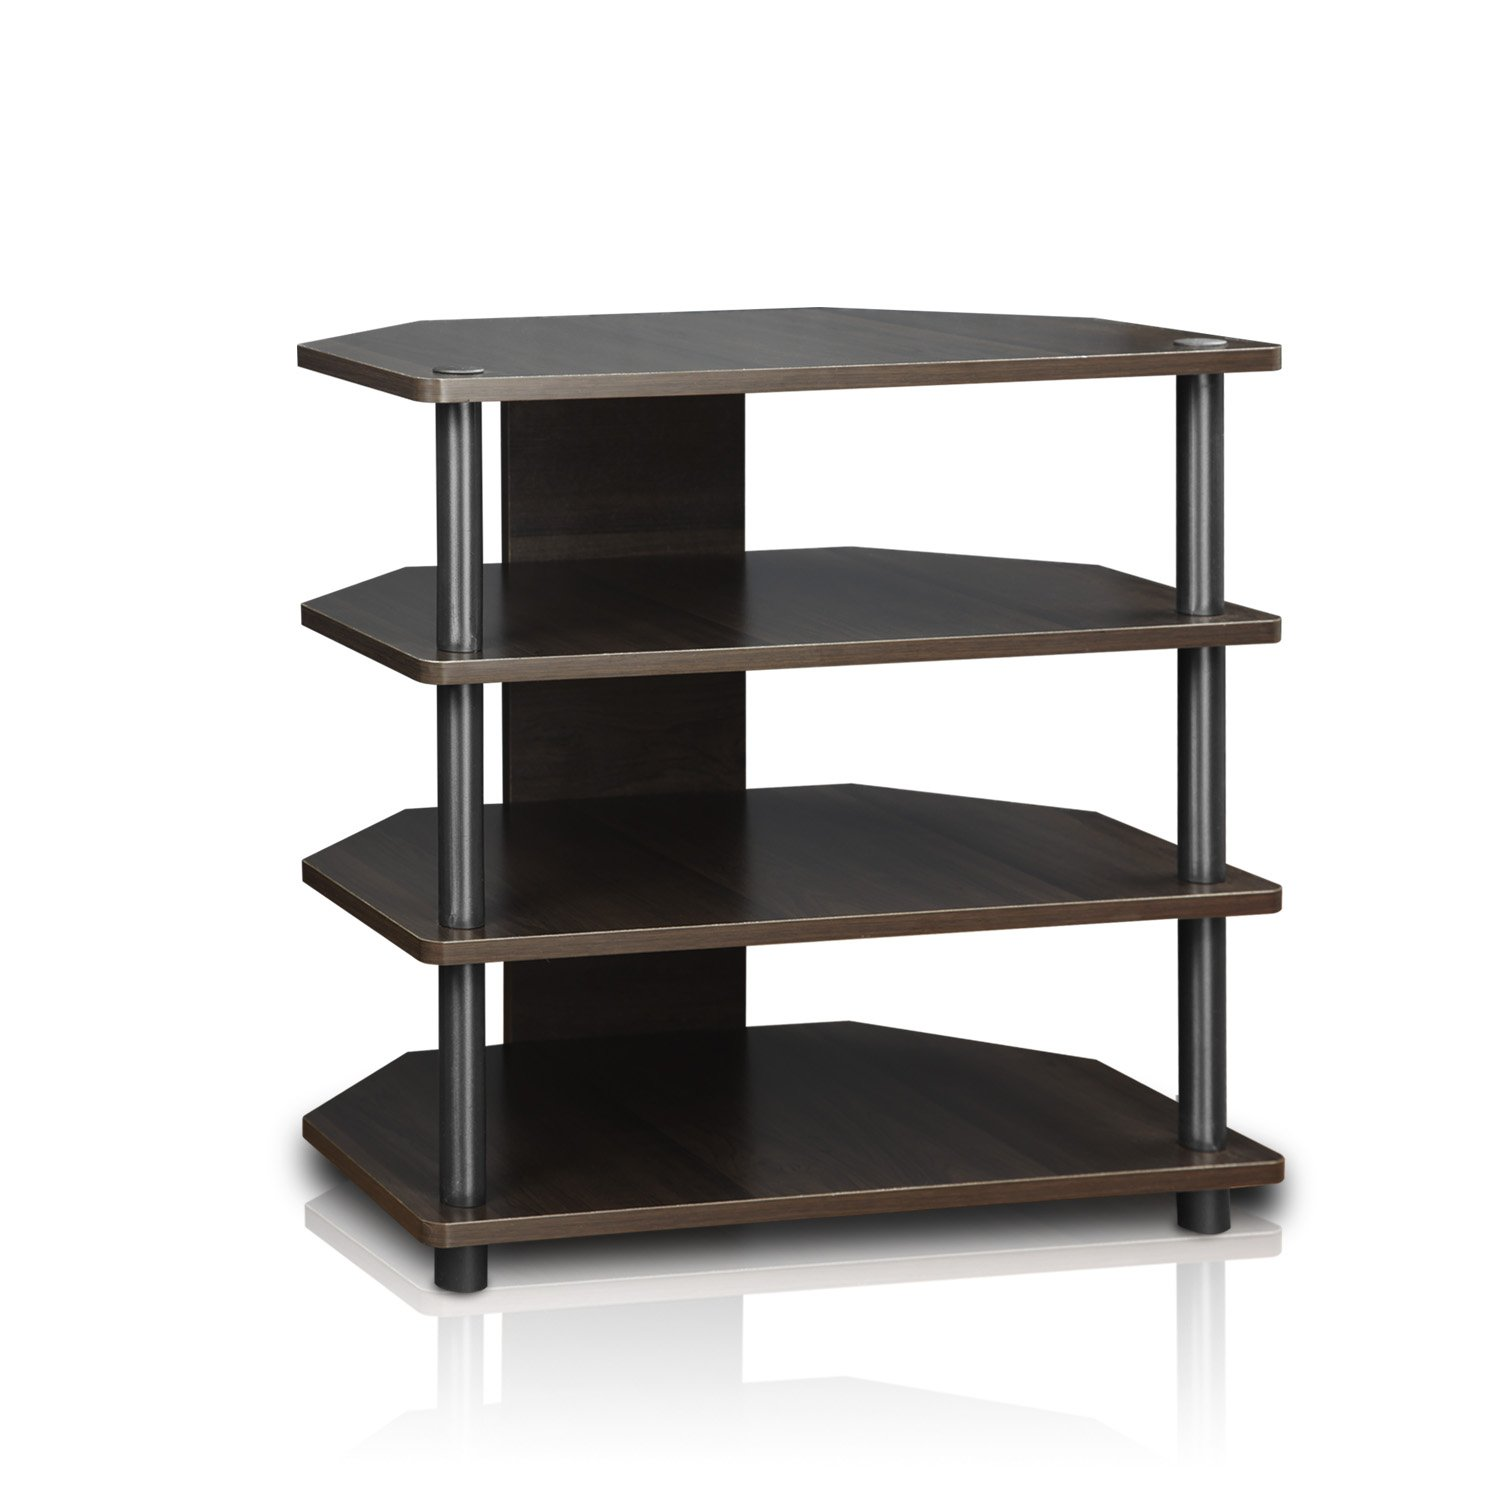 Amazon Furinno Turn N Tube Easy Assembly 4 Tier Petite TV Stand 15093BW BK Blackwood Kitchen Dining